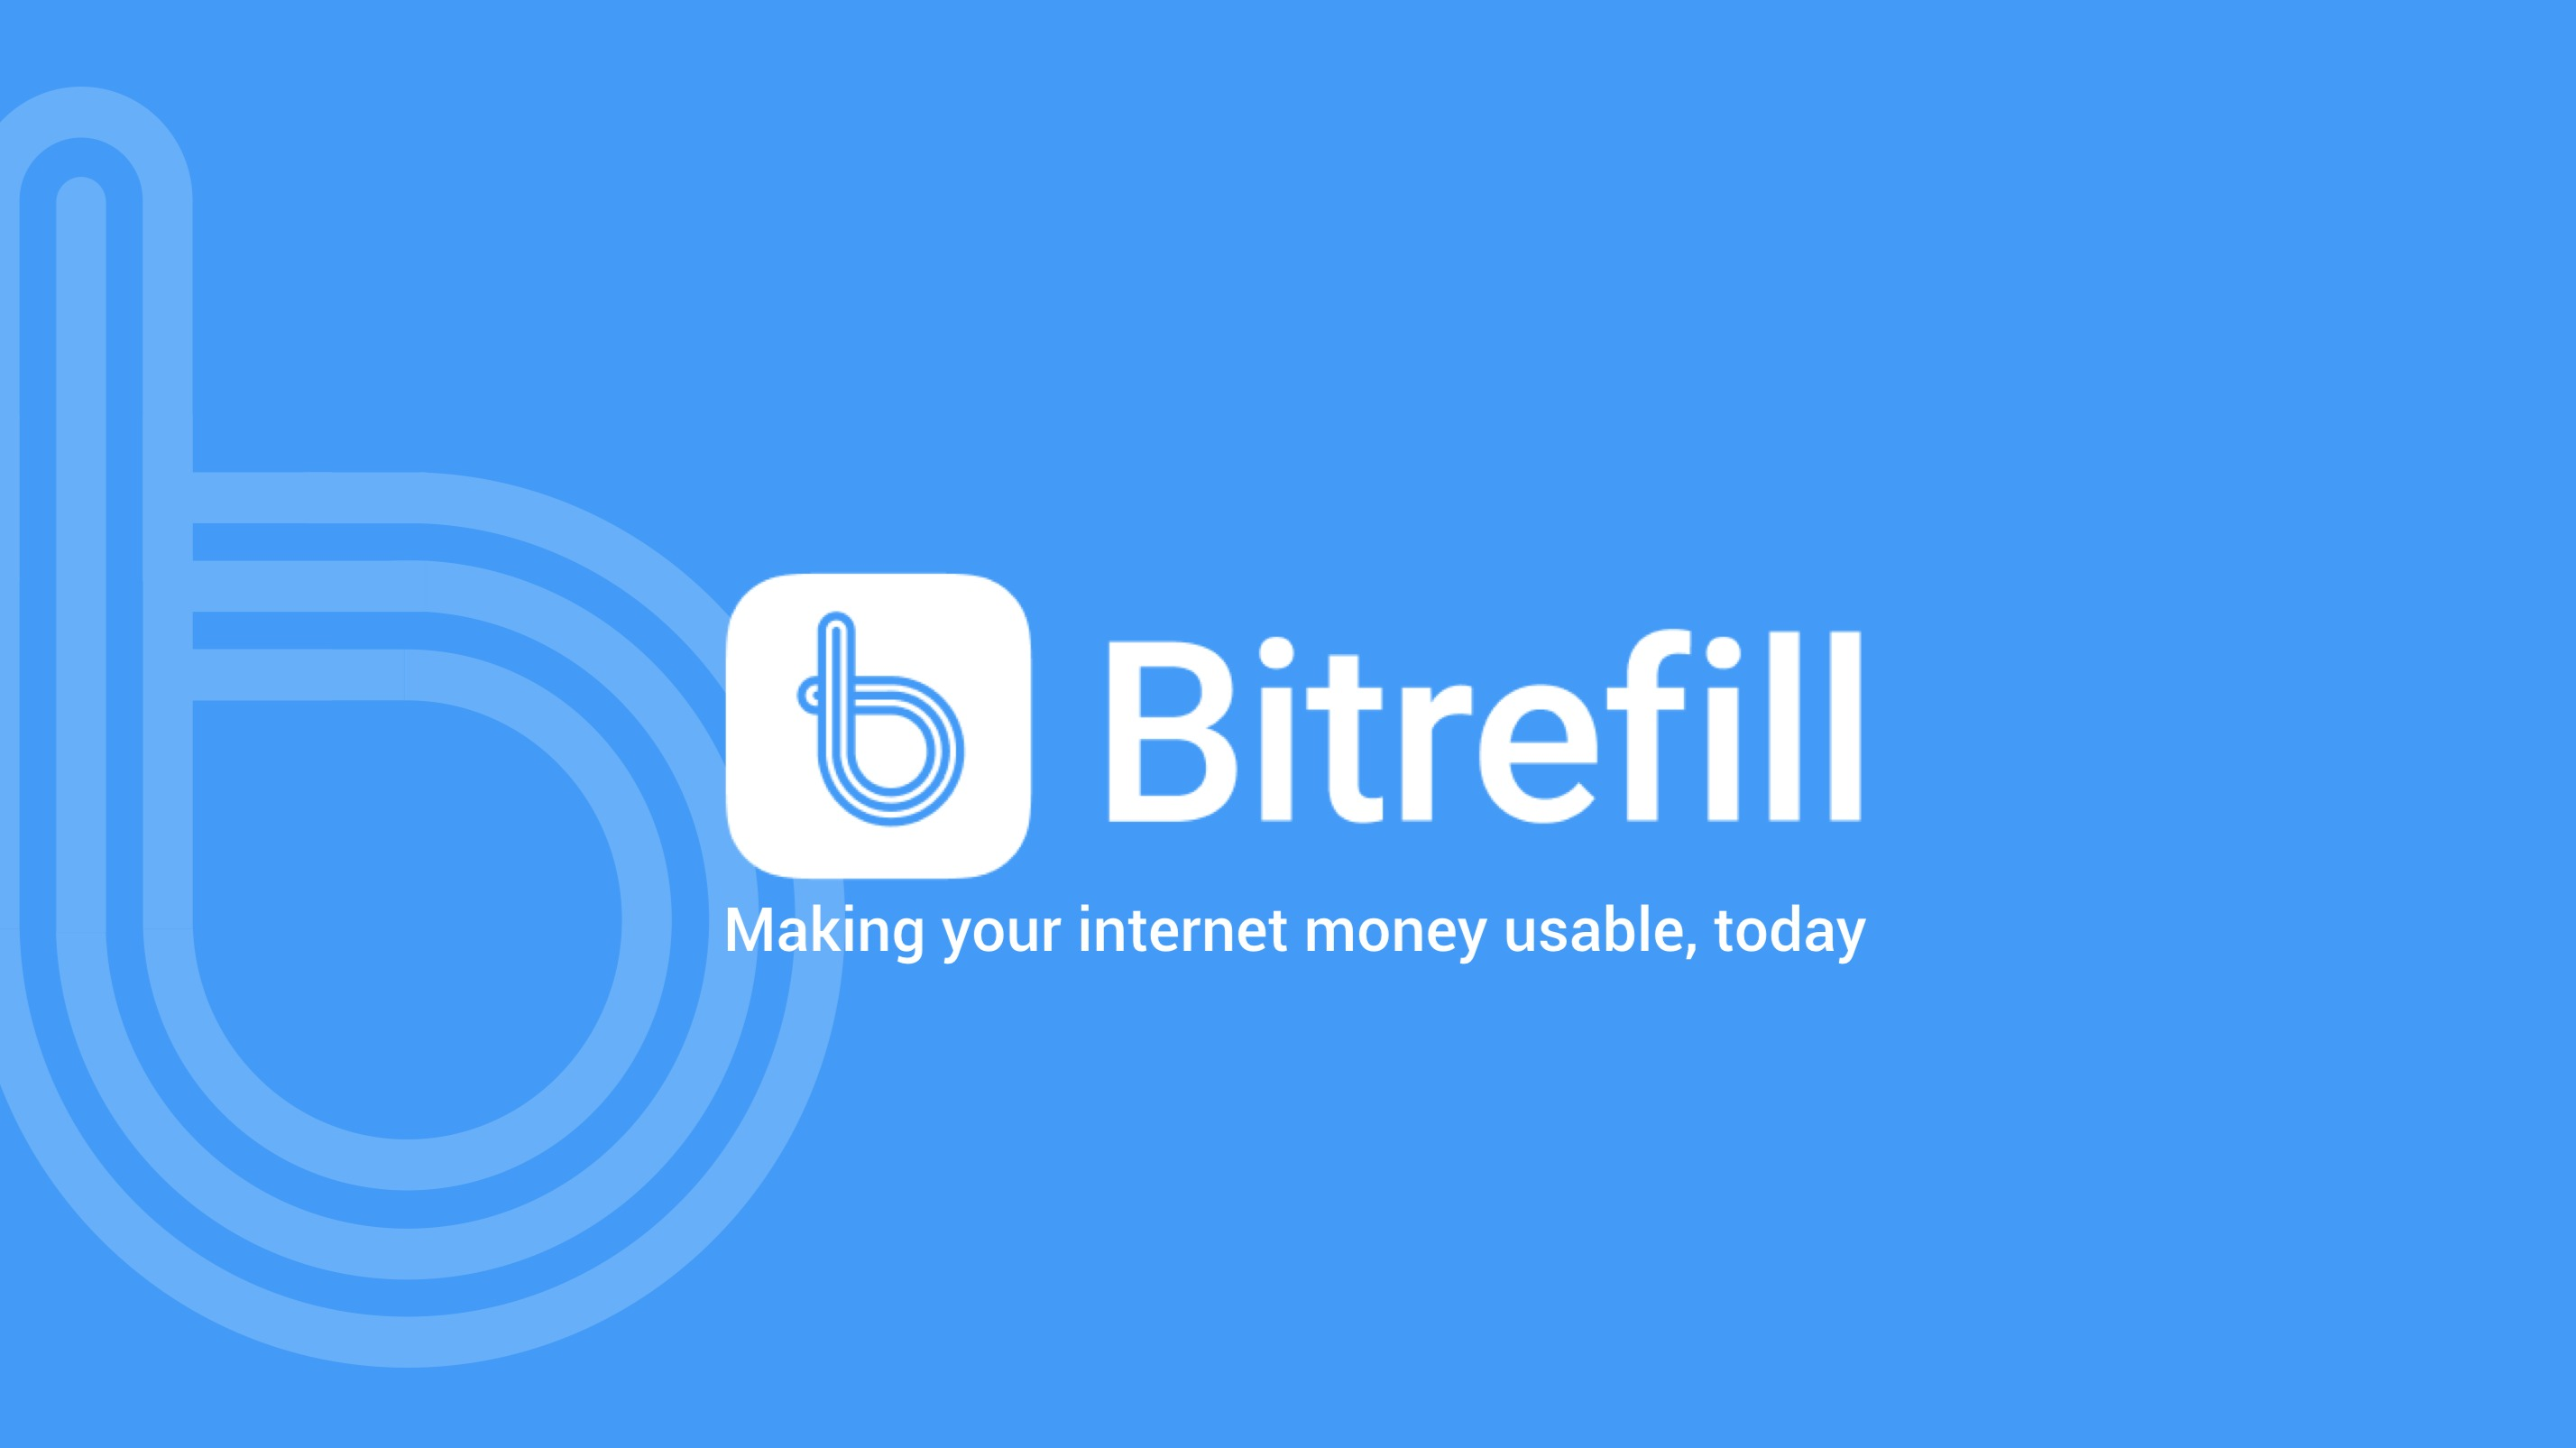 Bitrefill Live on BnkToTheFuture for Qualifying Investors